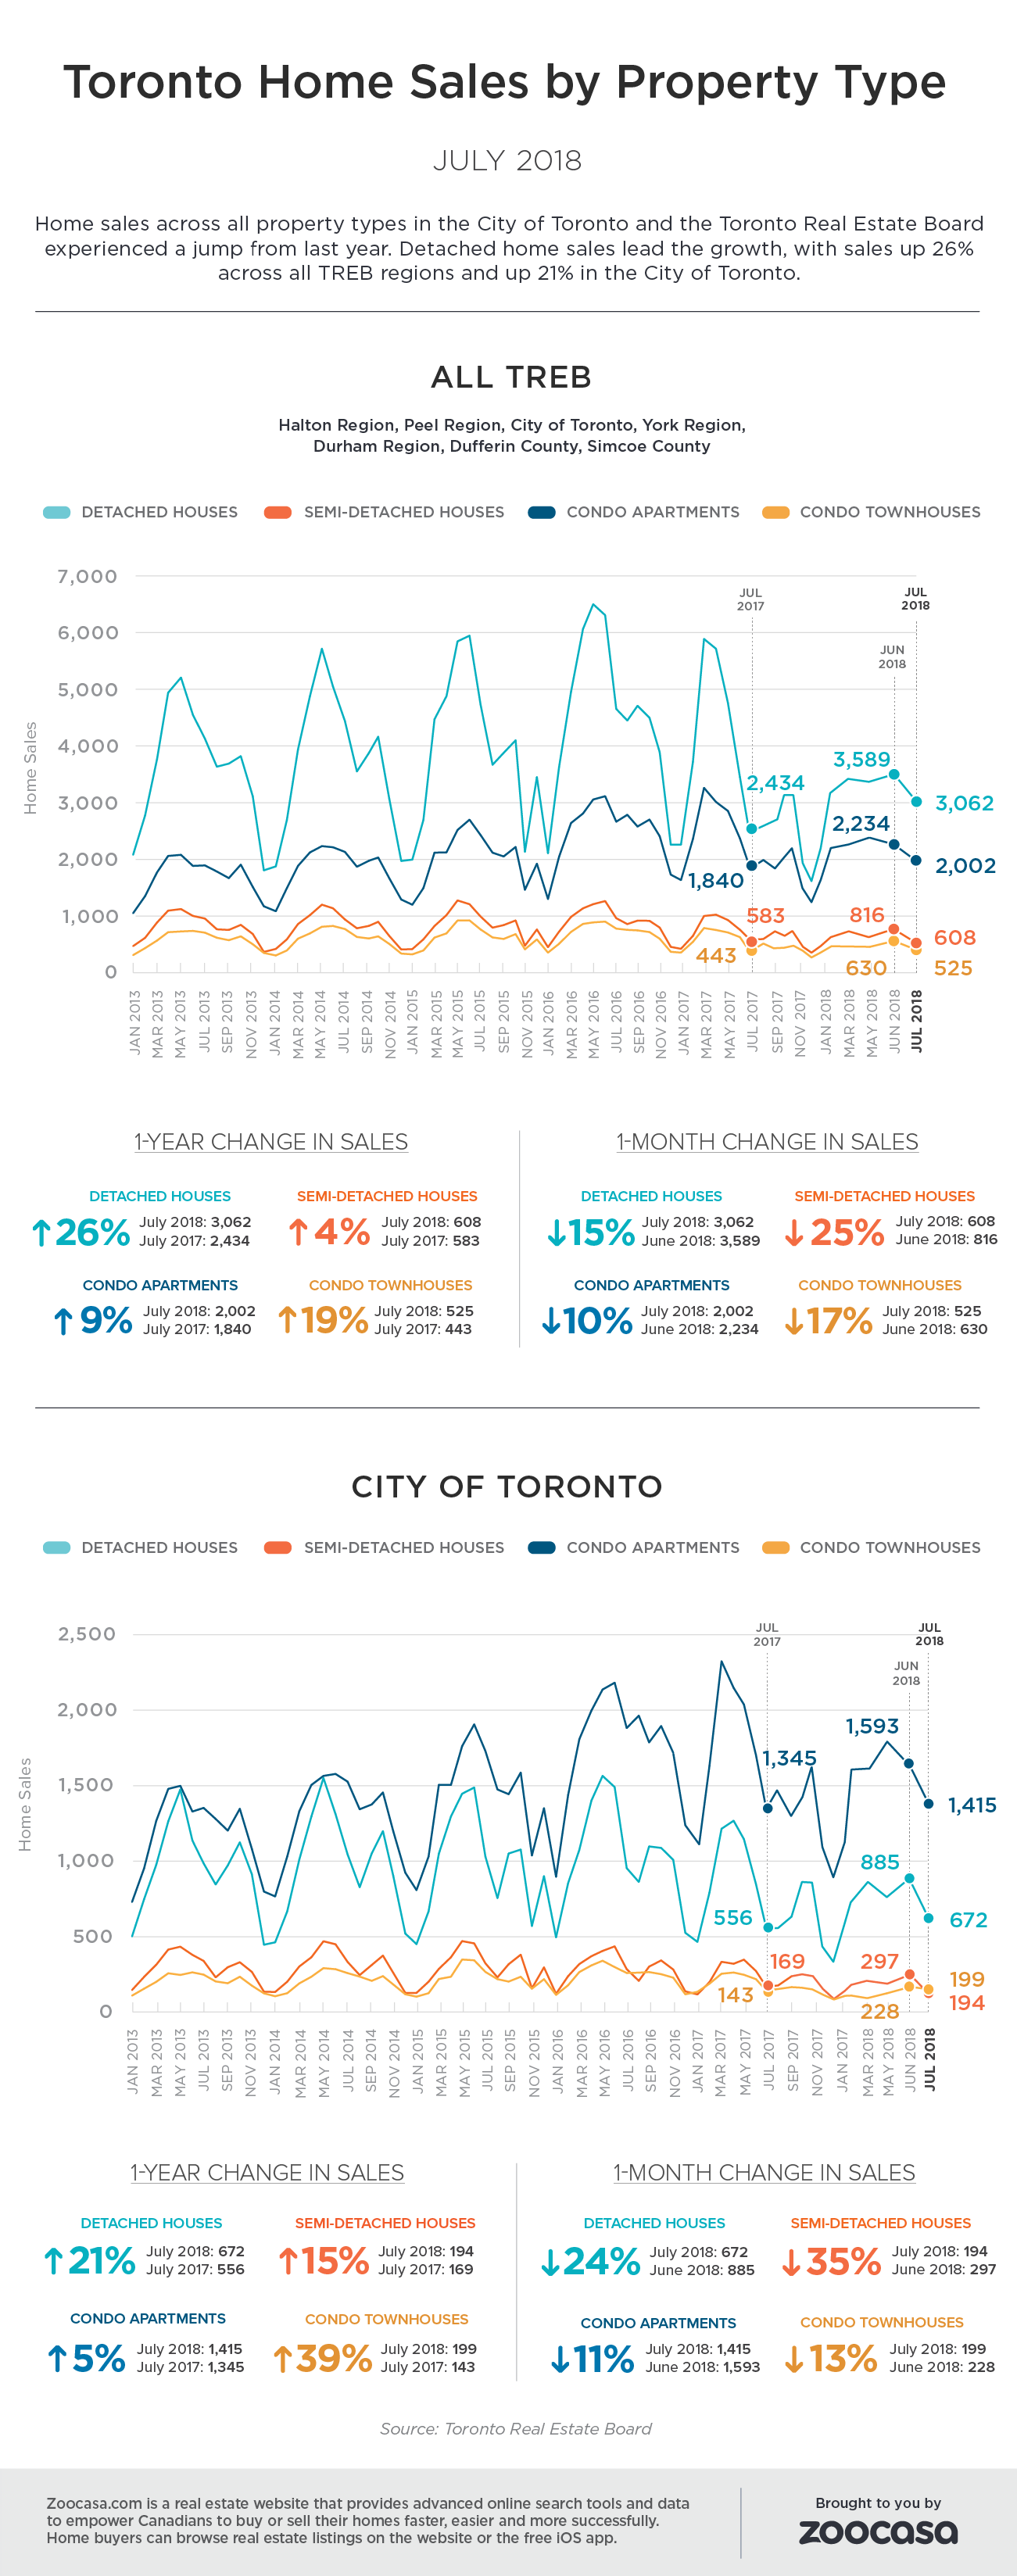 Toronto Home Sales - July 2018